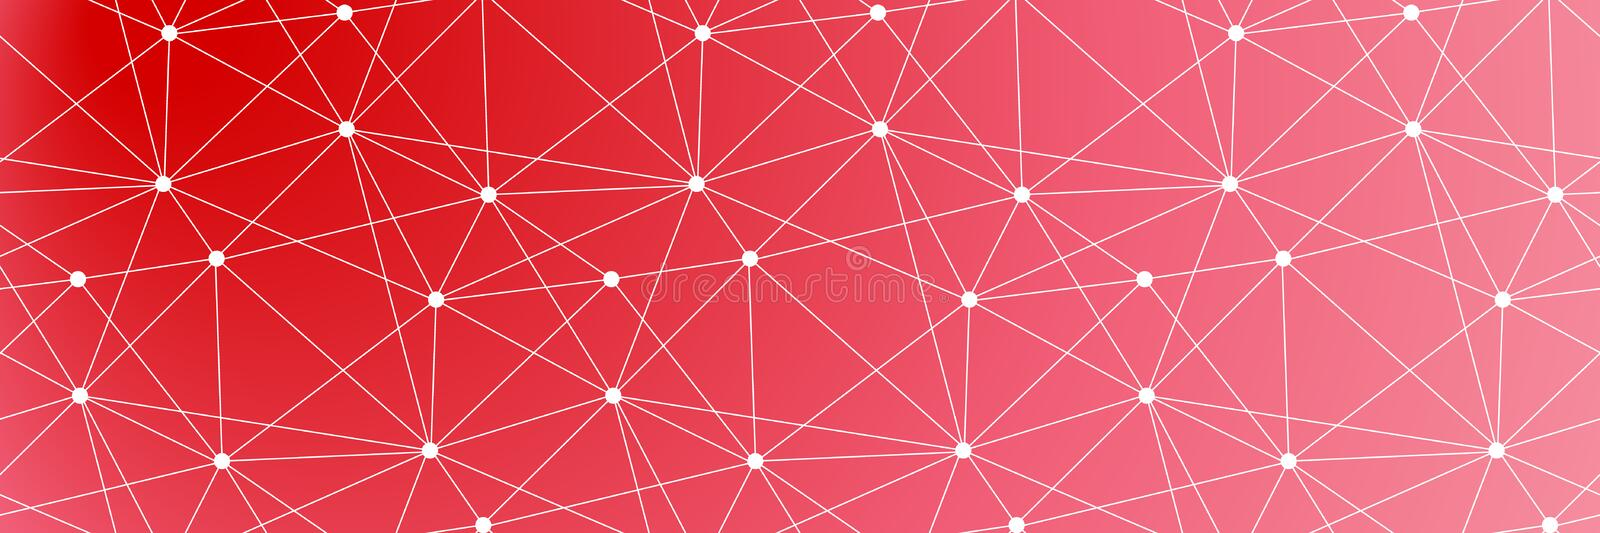 Global connected lines and dots seamless background. Molecular structure. stock illustration